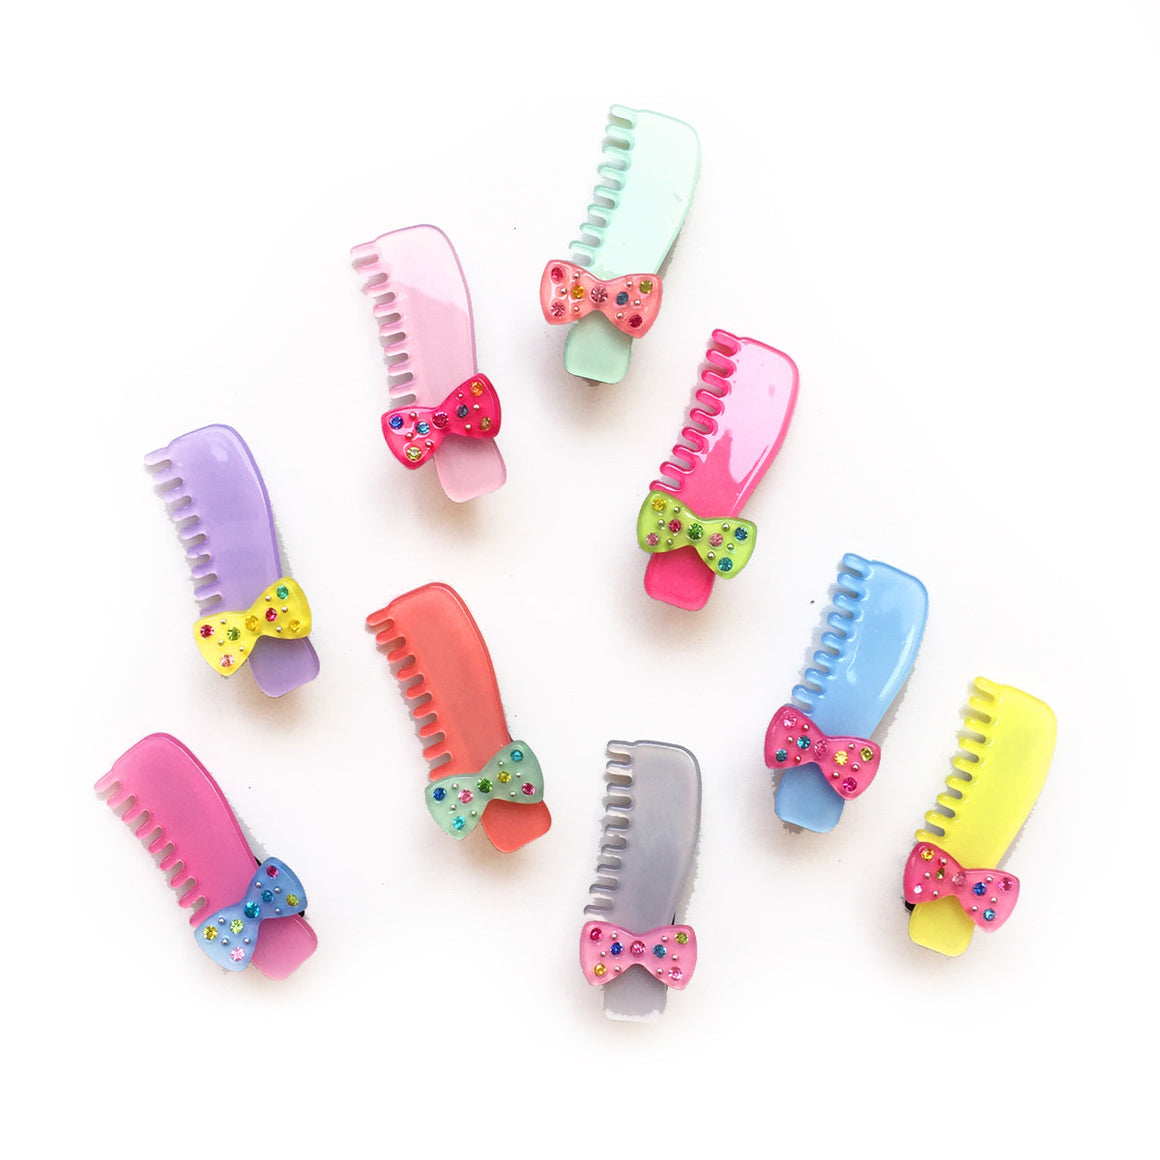 jeweled comb clip // hello shiso hair accessories for girls